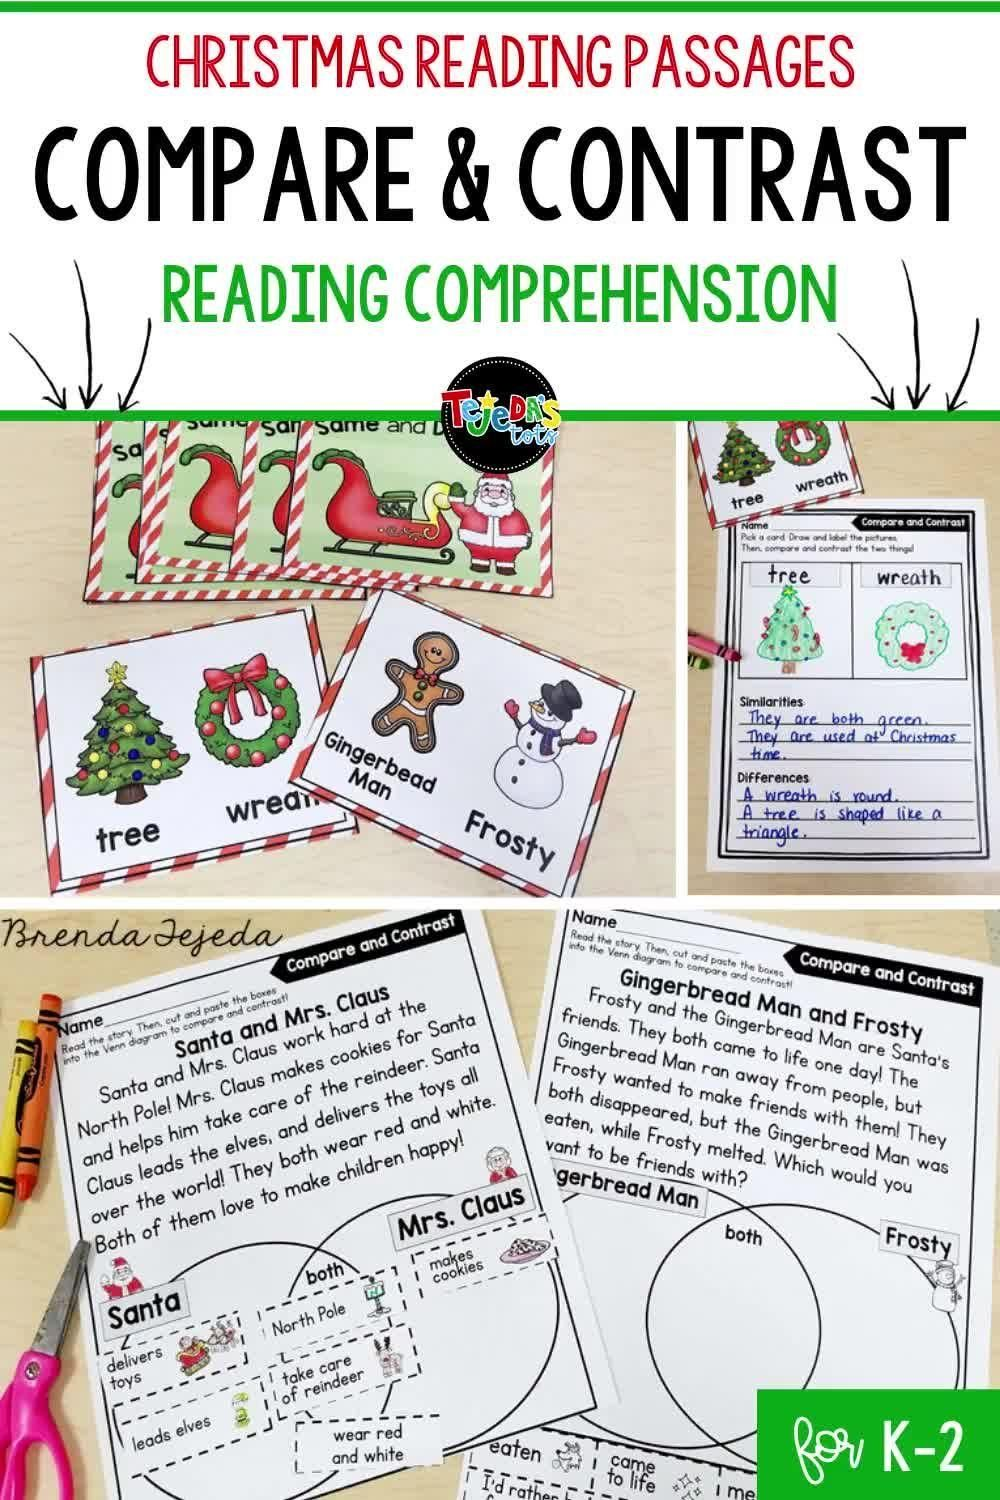 Christmas Compare And Contrast Passages Printables Video Video Christmas Reading Passages Christmas Reading Comprehension Christmas Reading [ 1500 x 1000 Pixel ]